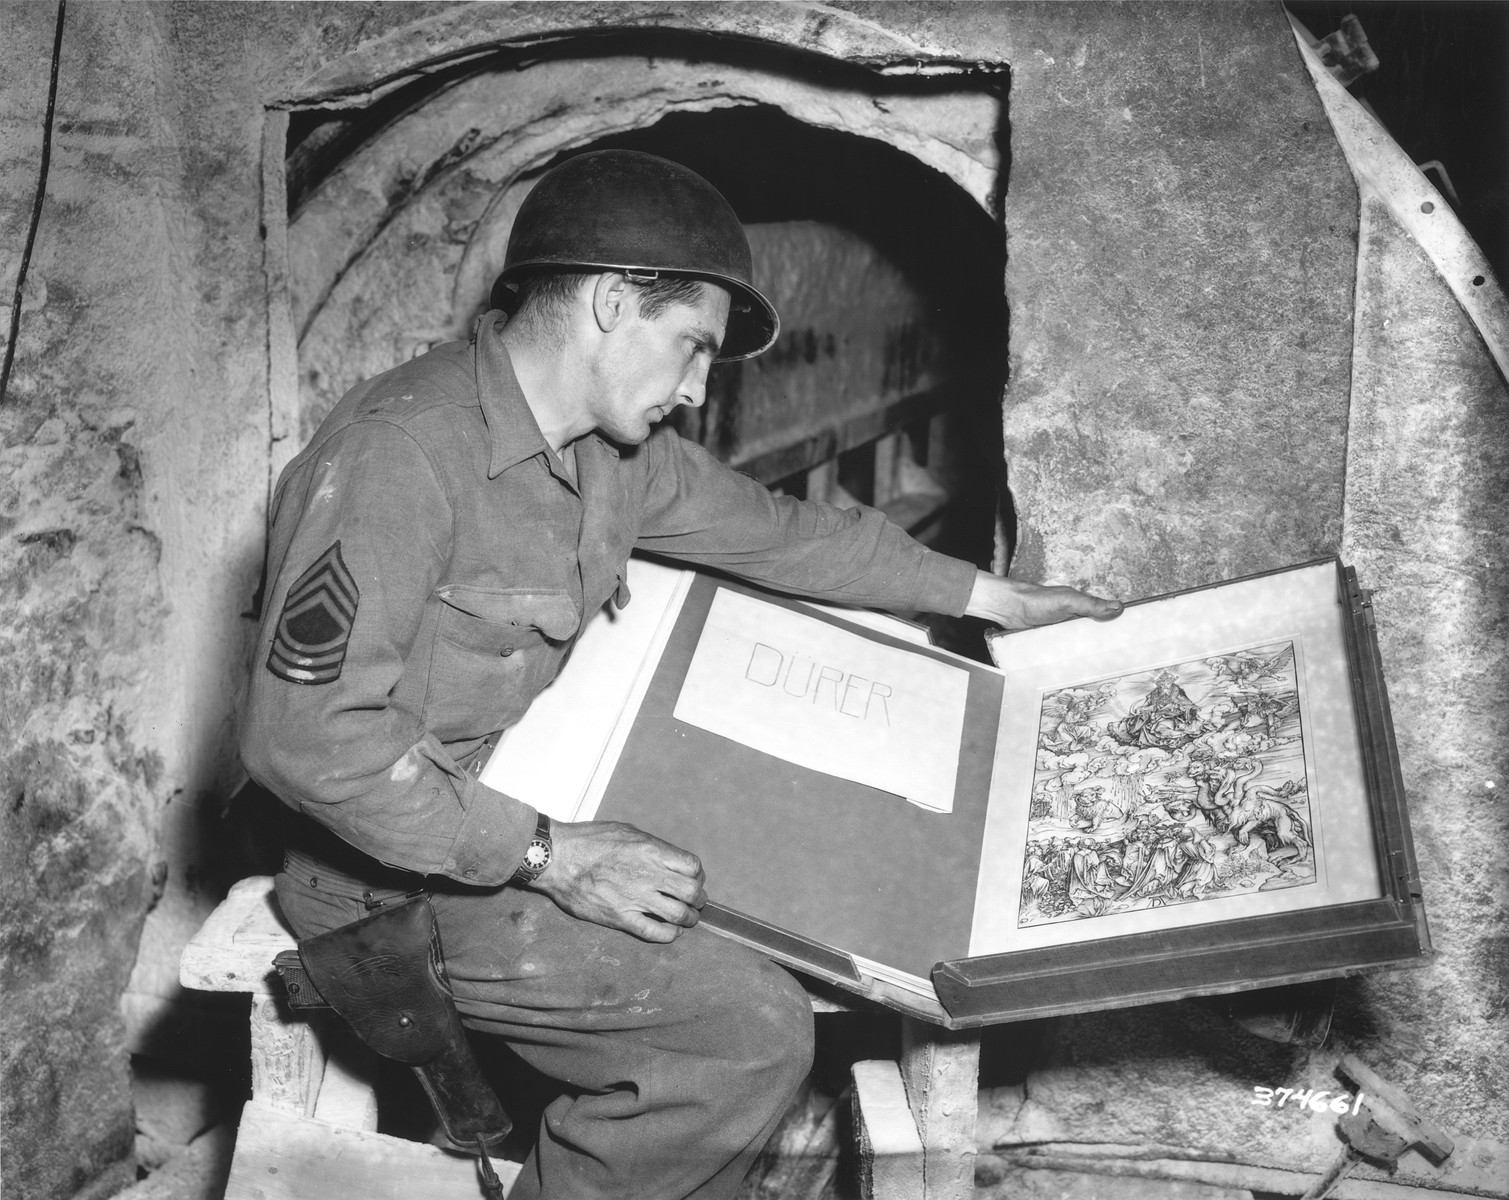 Sgt. Harold Maus of Scranton, PA examines an album of engravings by Albrecht Duerer that was found in a vault containing numerous other art treasures that were looted by the Nazi regime.